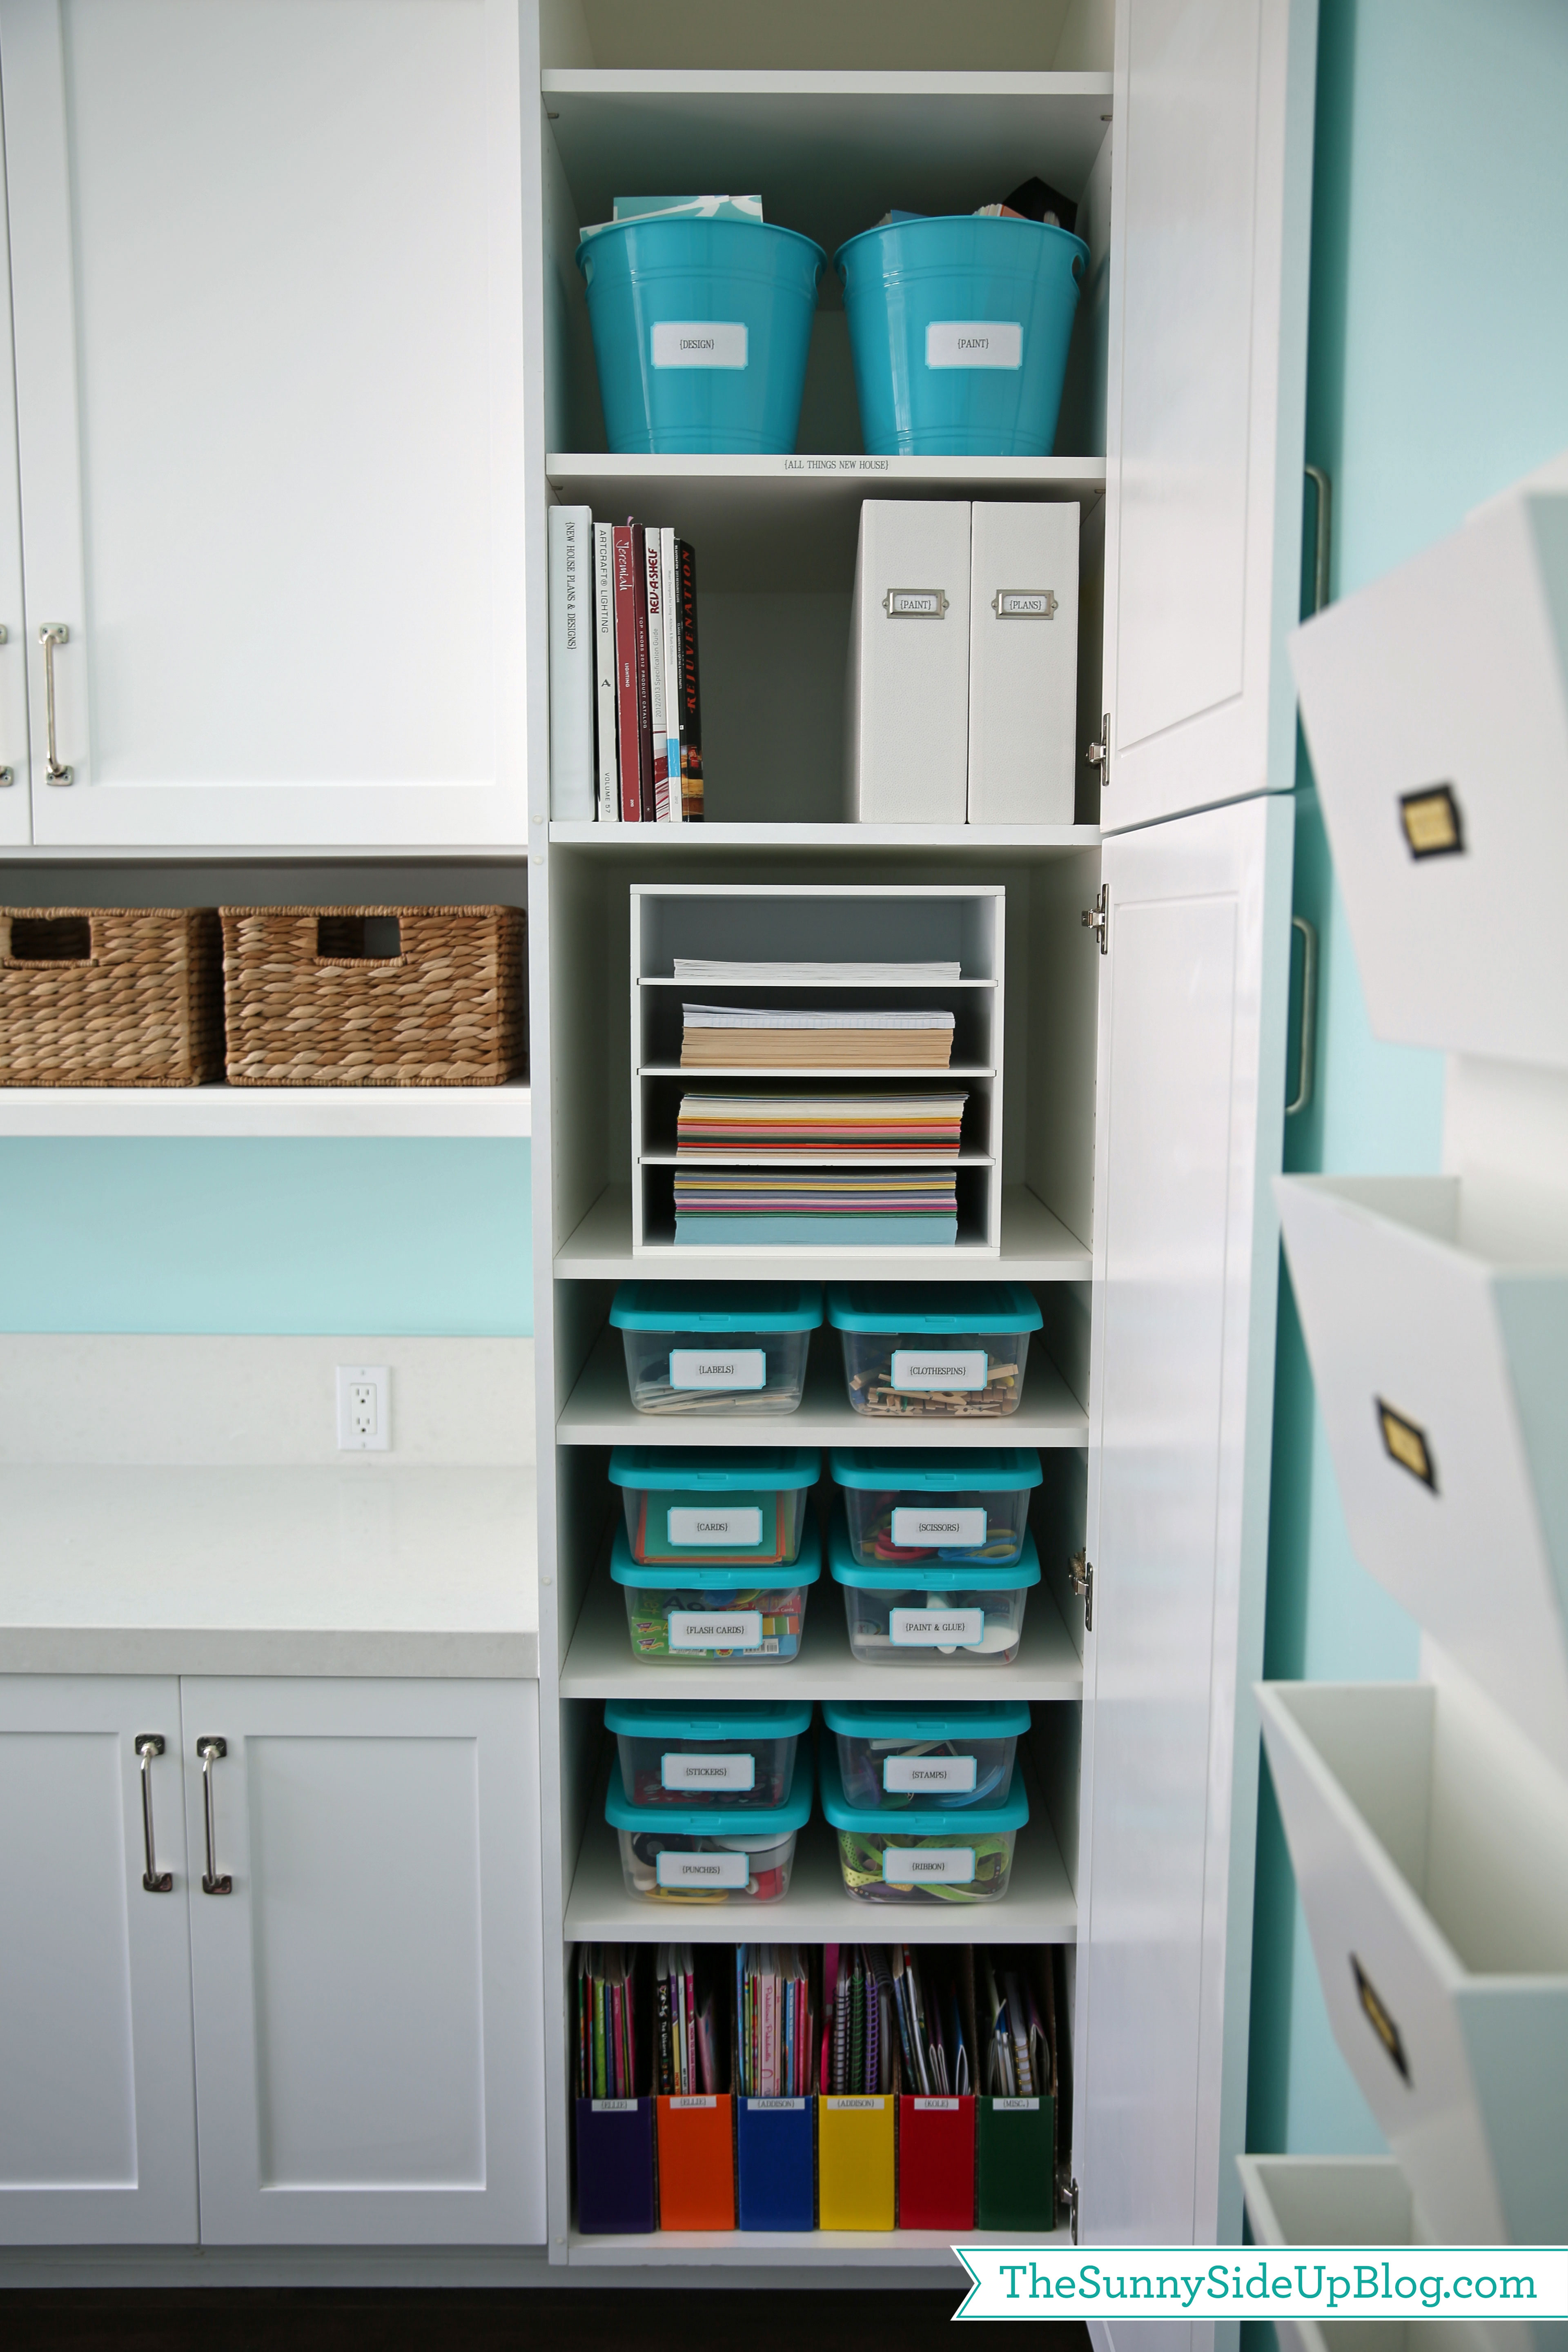 Over 20 ways to organize your home and life the sunny side up blog - Organizing craft supplies in small space collection ...